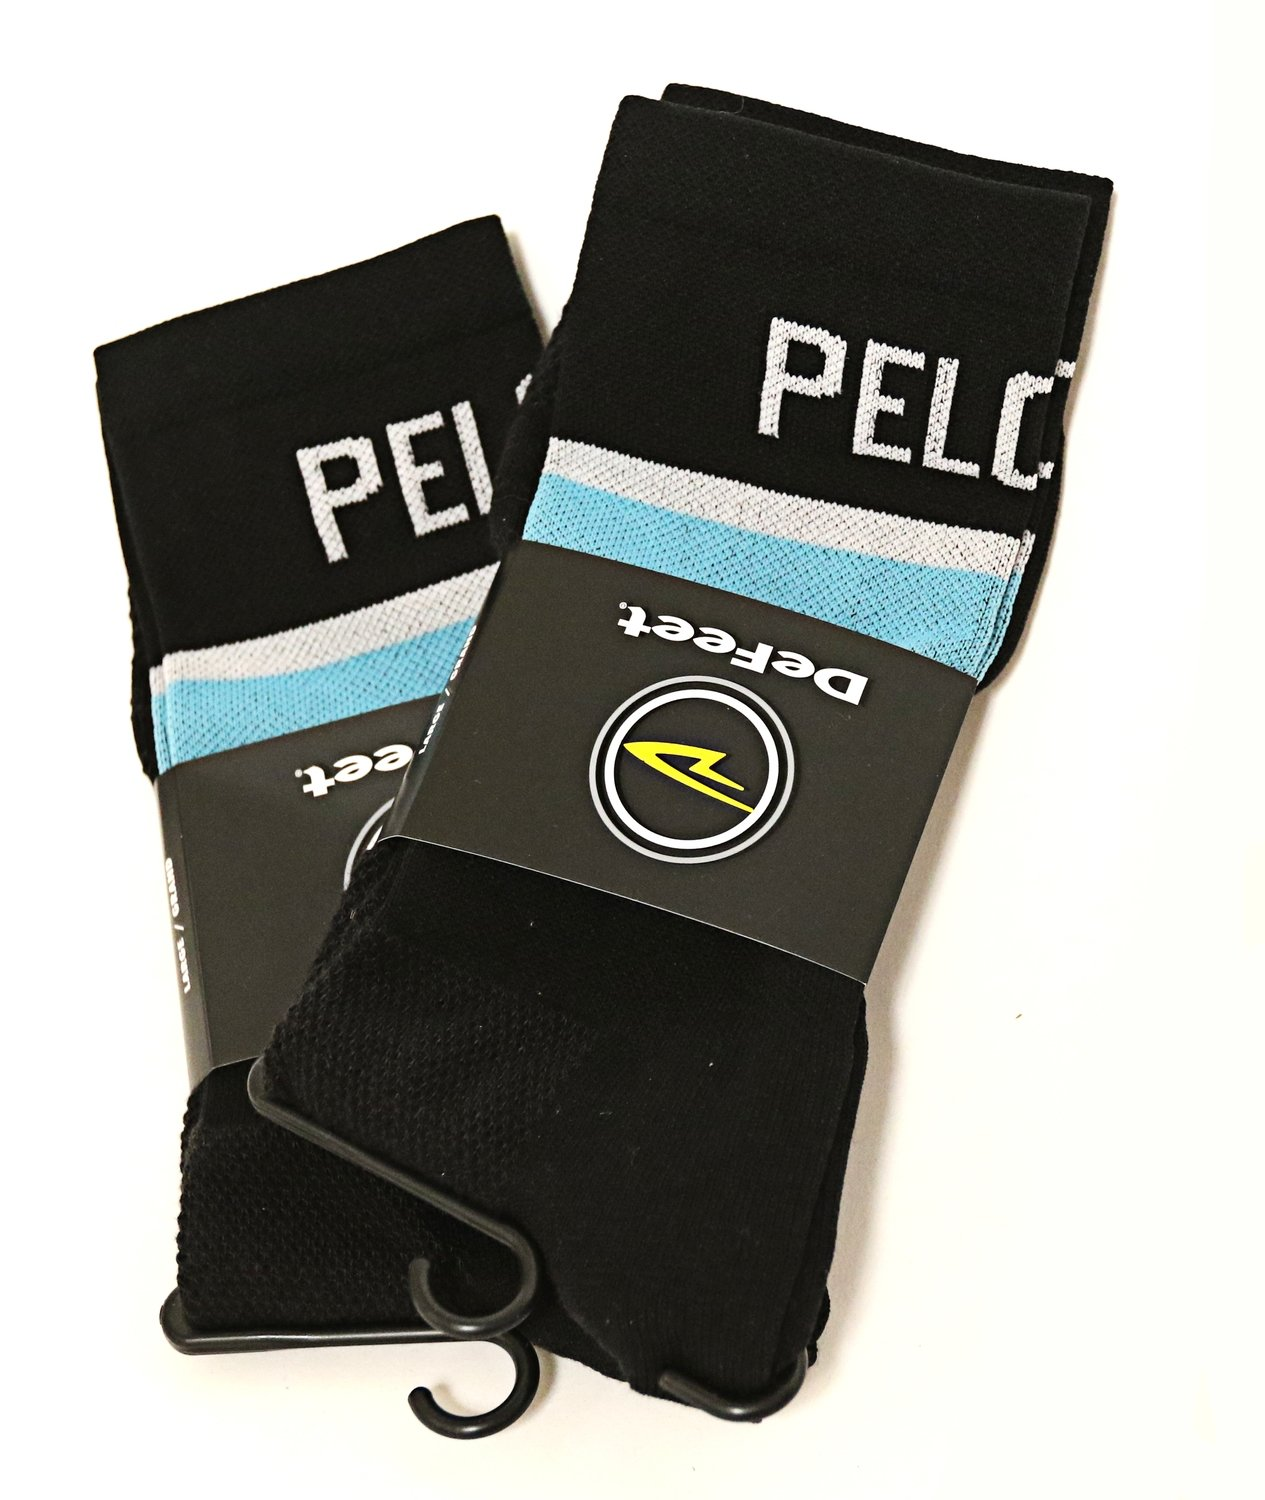 DEFEET/PELOTON magazine socks